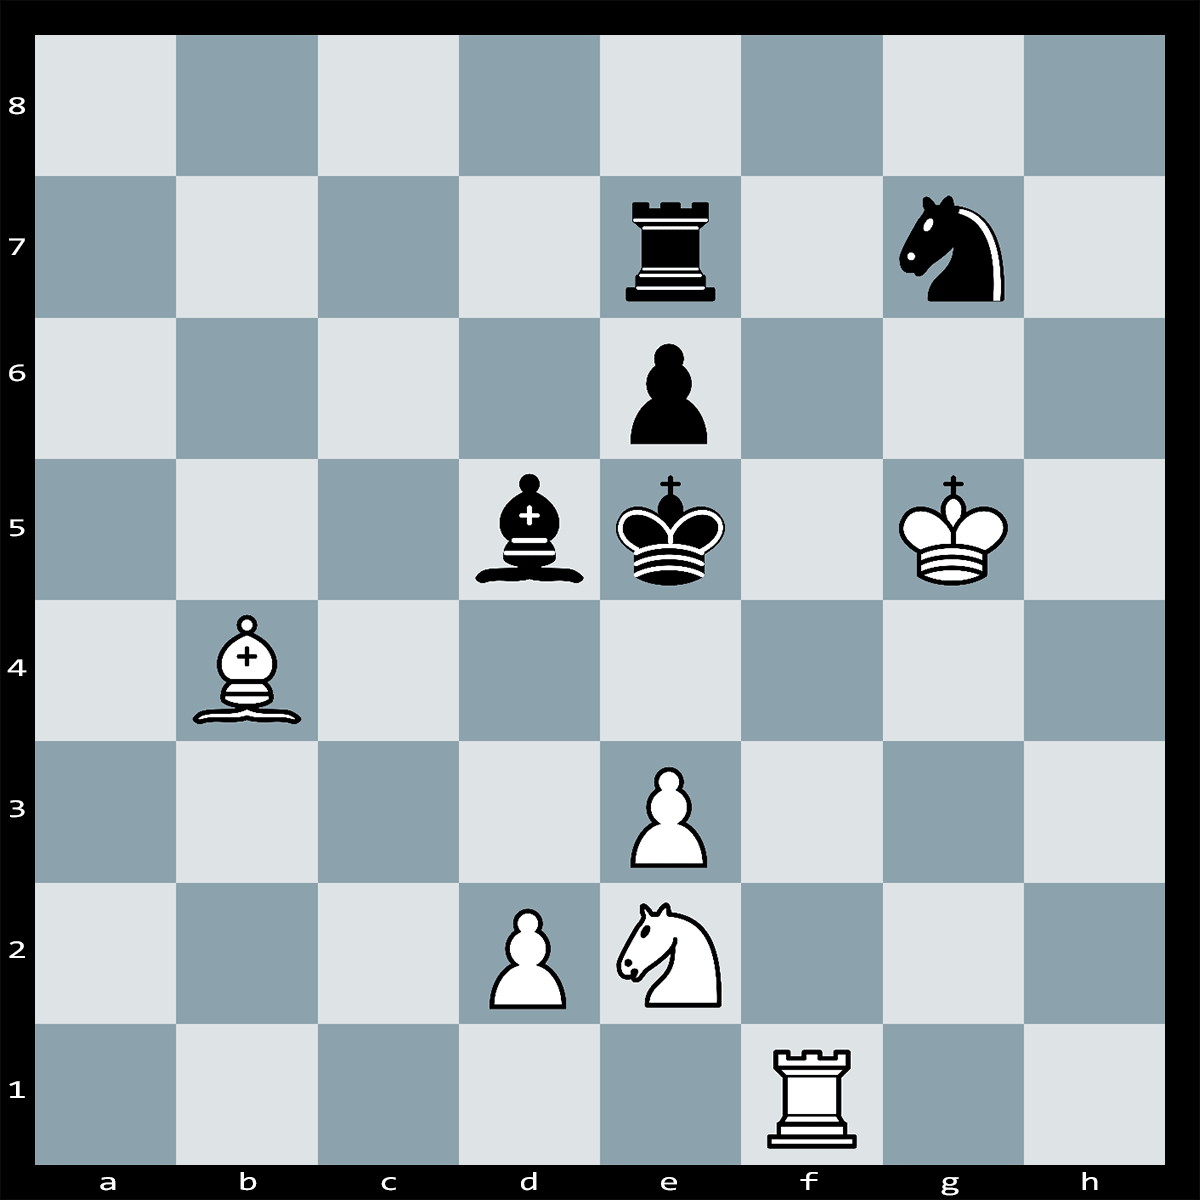 Chess Puzzle #347 | In this complex-looking position, White has a mate in 4 moves? Can you see it?